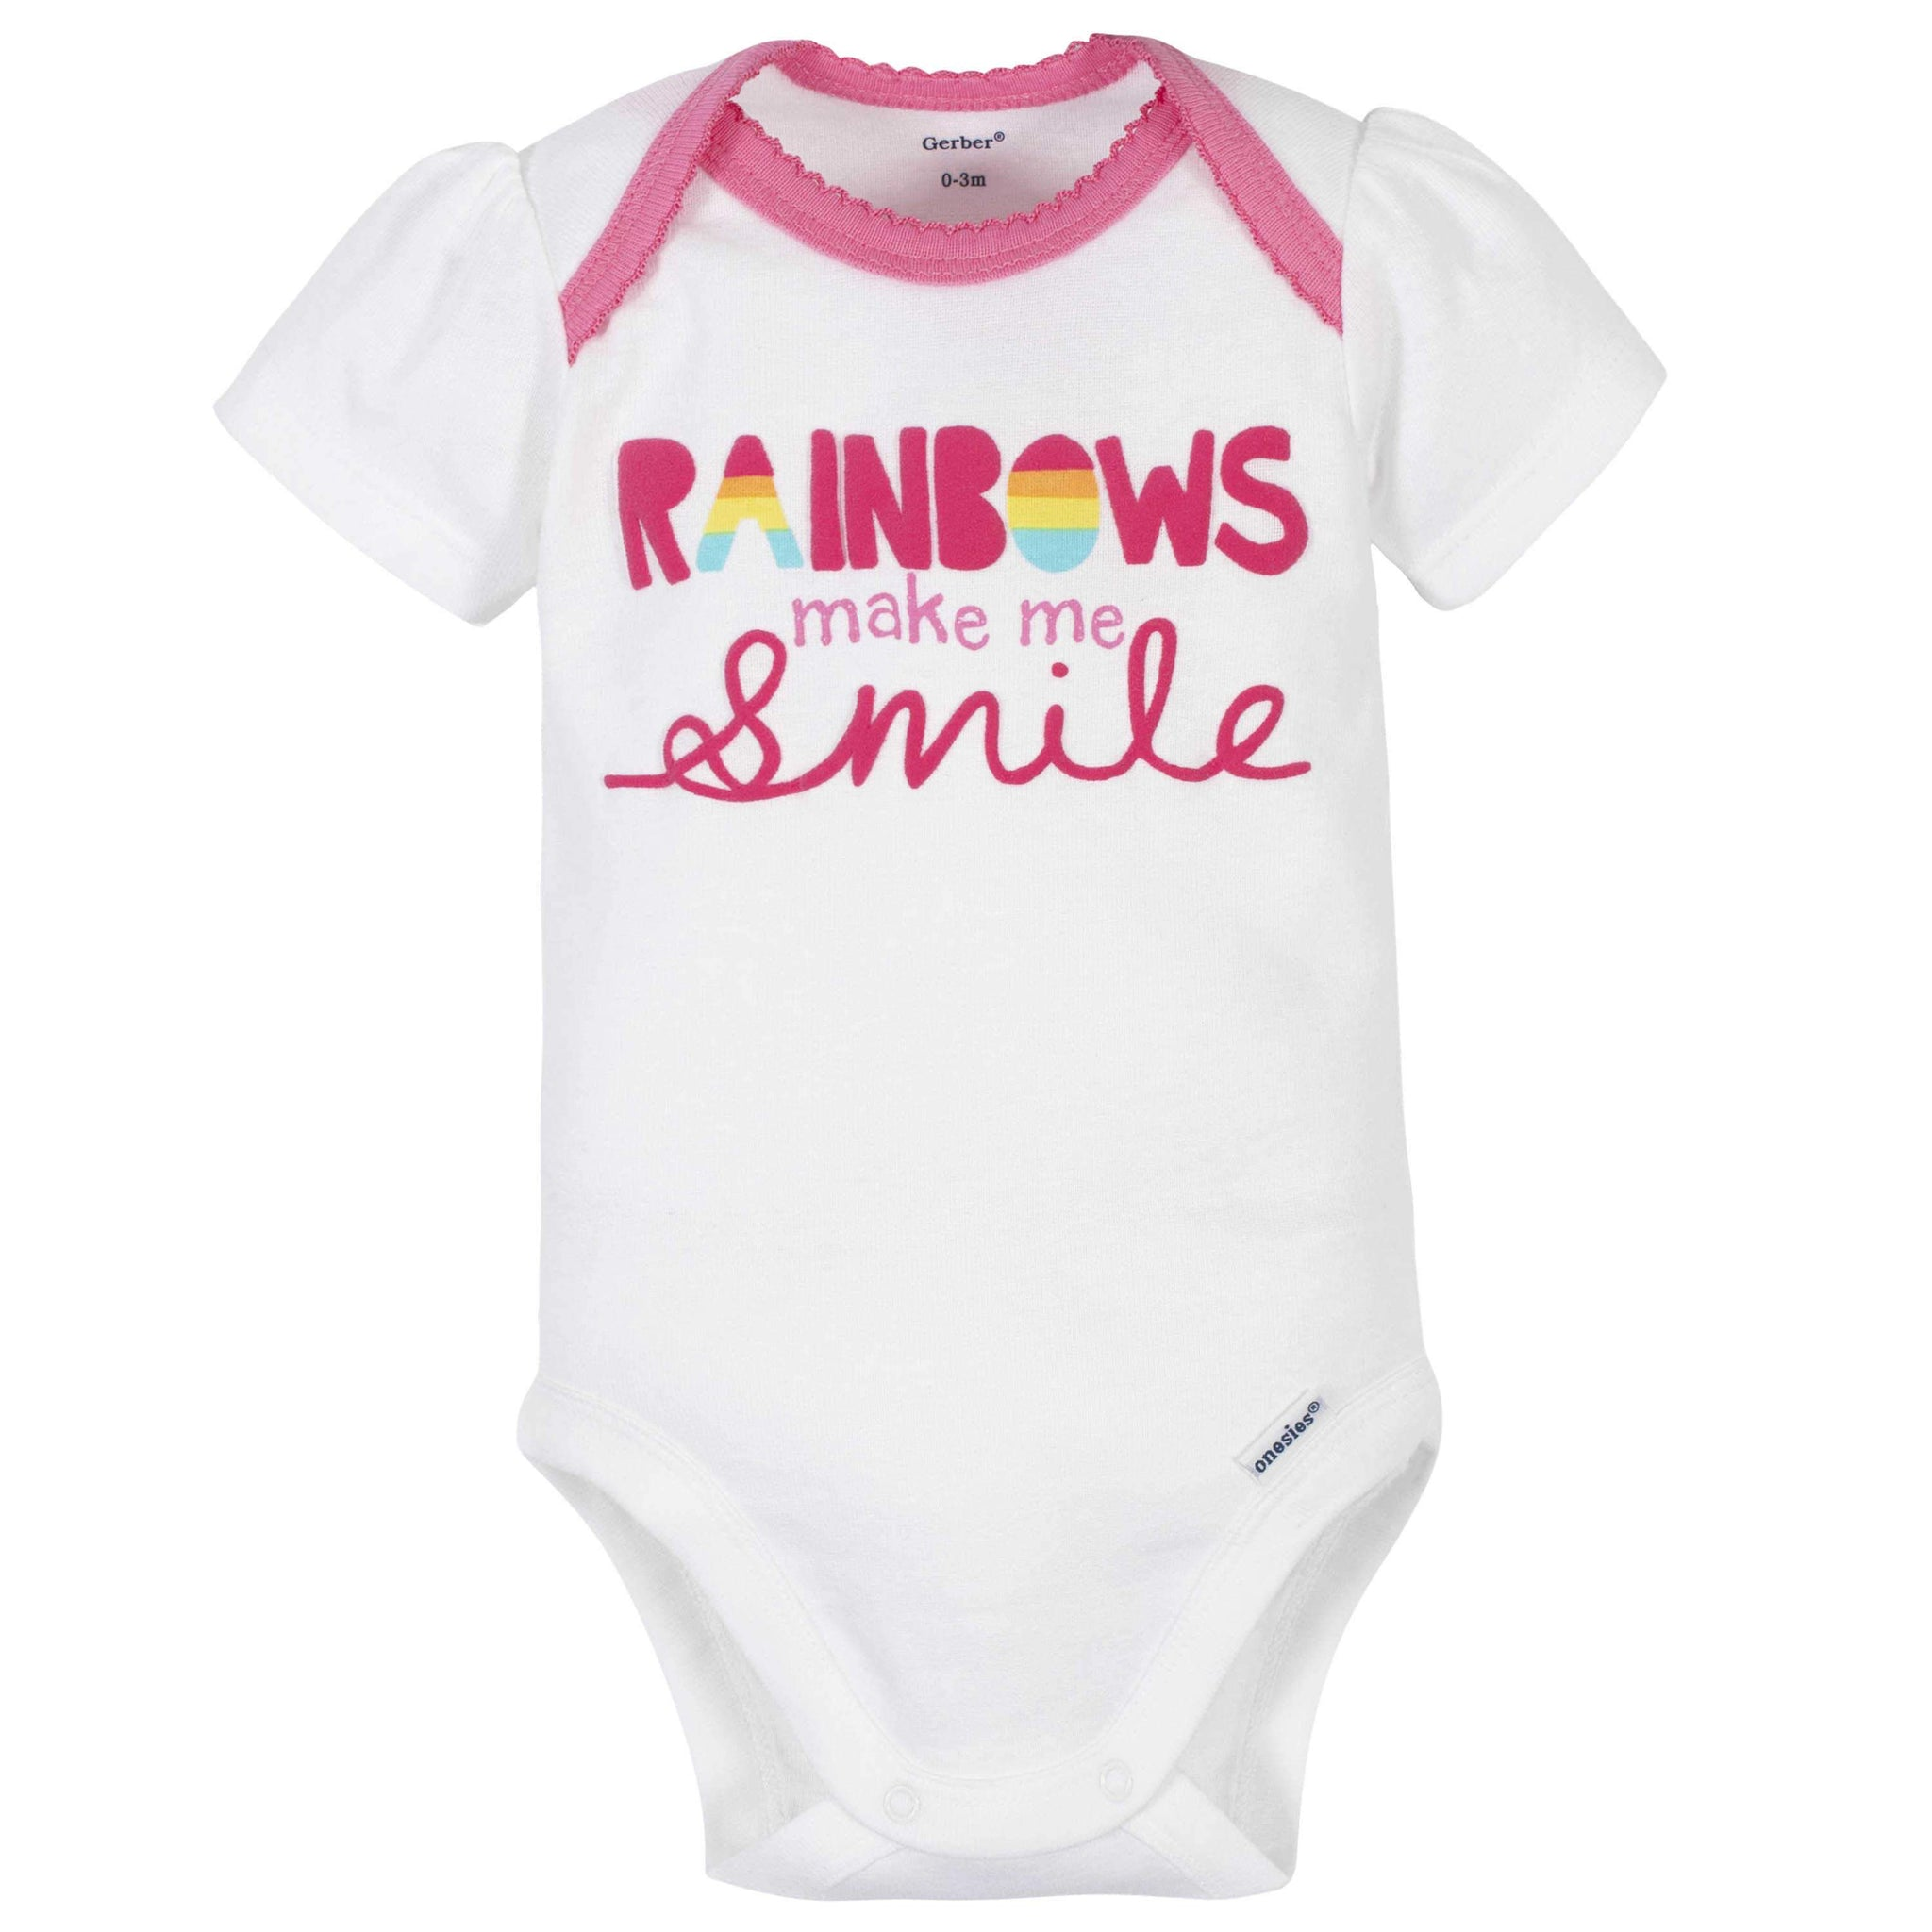 Gerber® 4-Piece Baby Girls Rainbow Onesies Bodysuit, Skirted Panty, Shirt, and Slim Pant Set-Gerber Childrenswear